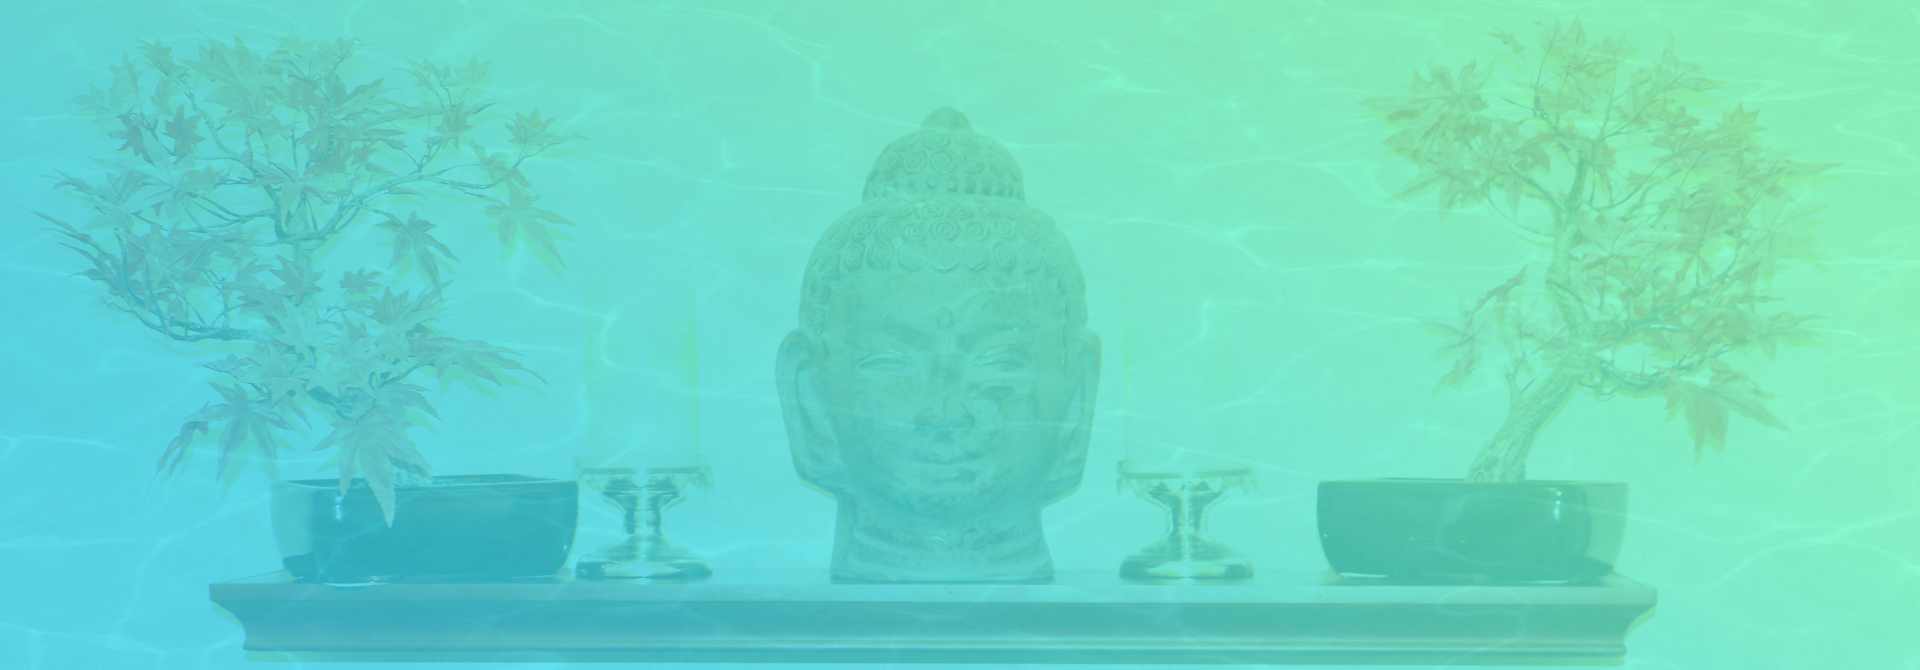 front-page-background-image-buda